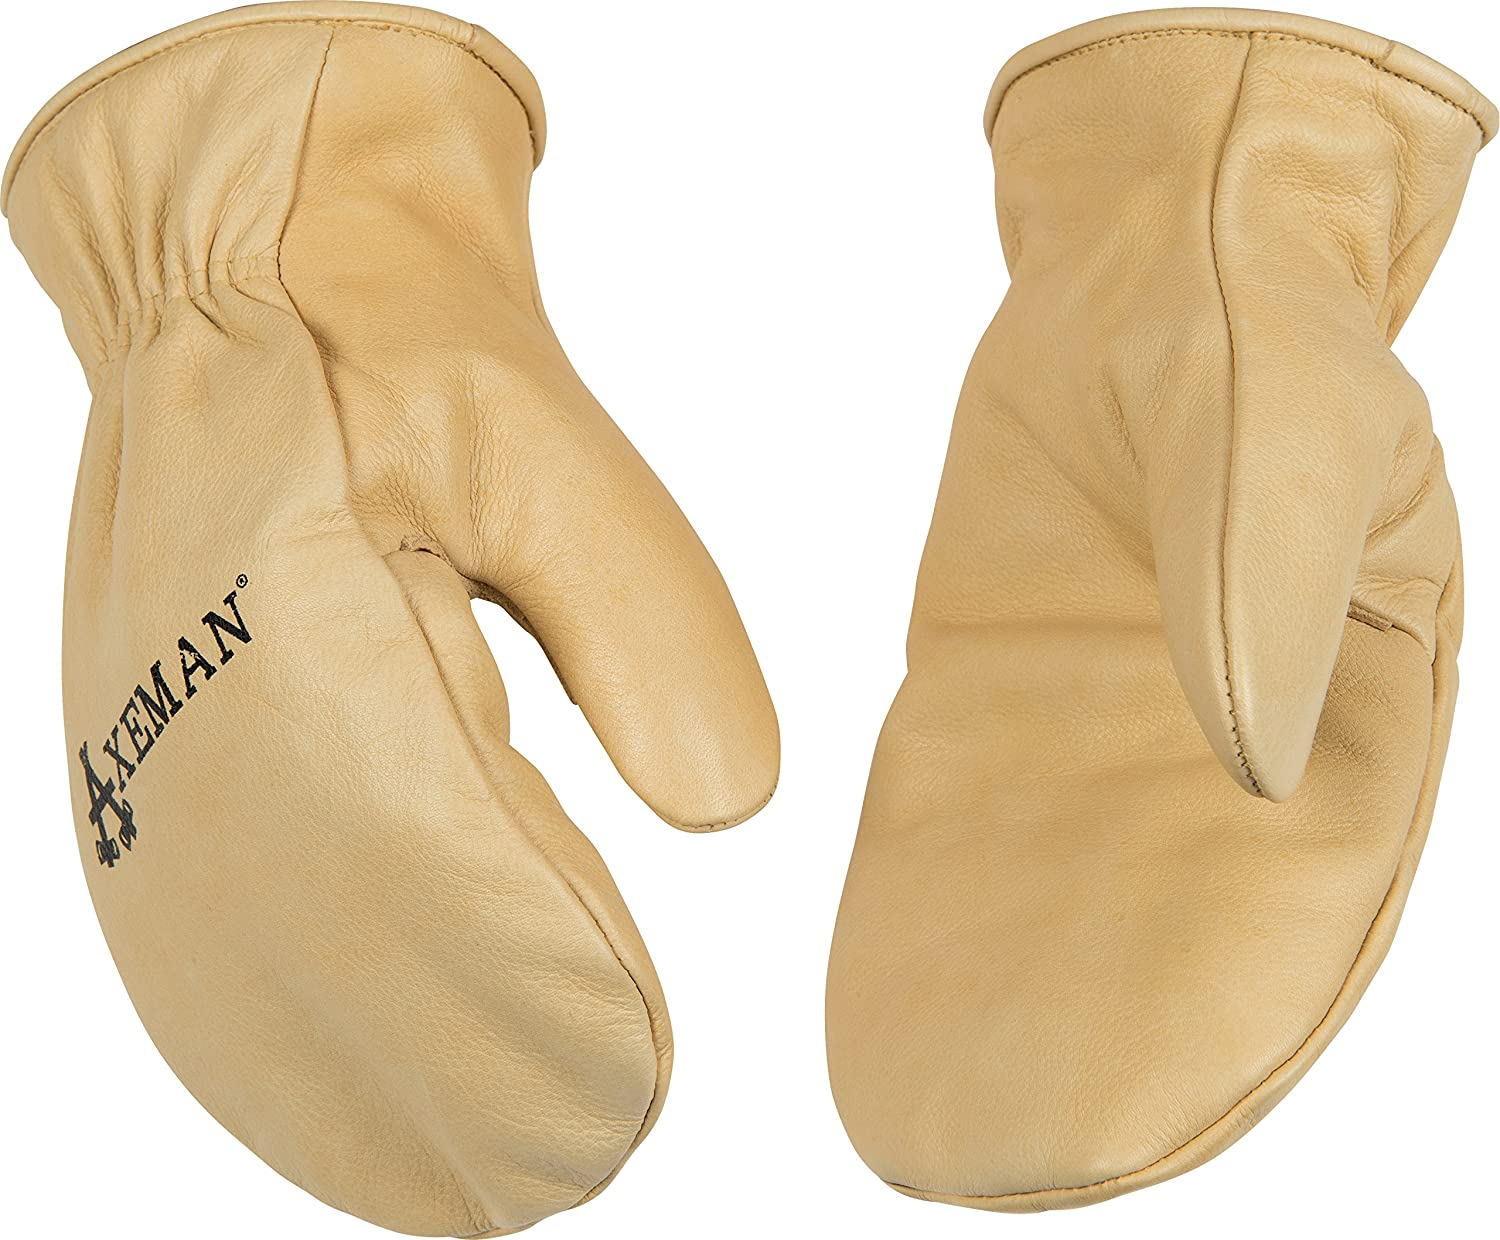 Kinco 1930 Axeman Heatkeep Thermal Lined Grain Cowhide Leather Mitt, Work, Medium, Palomino (Pack of 6 Pairs) by KINCO INTERNATIONAL B00AN7QZQS